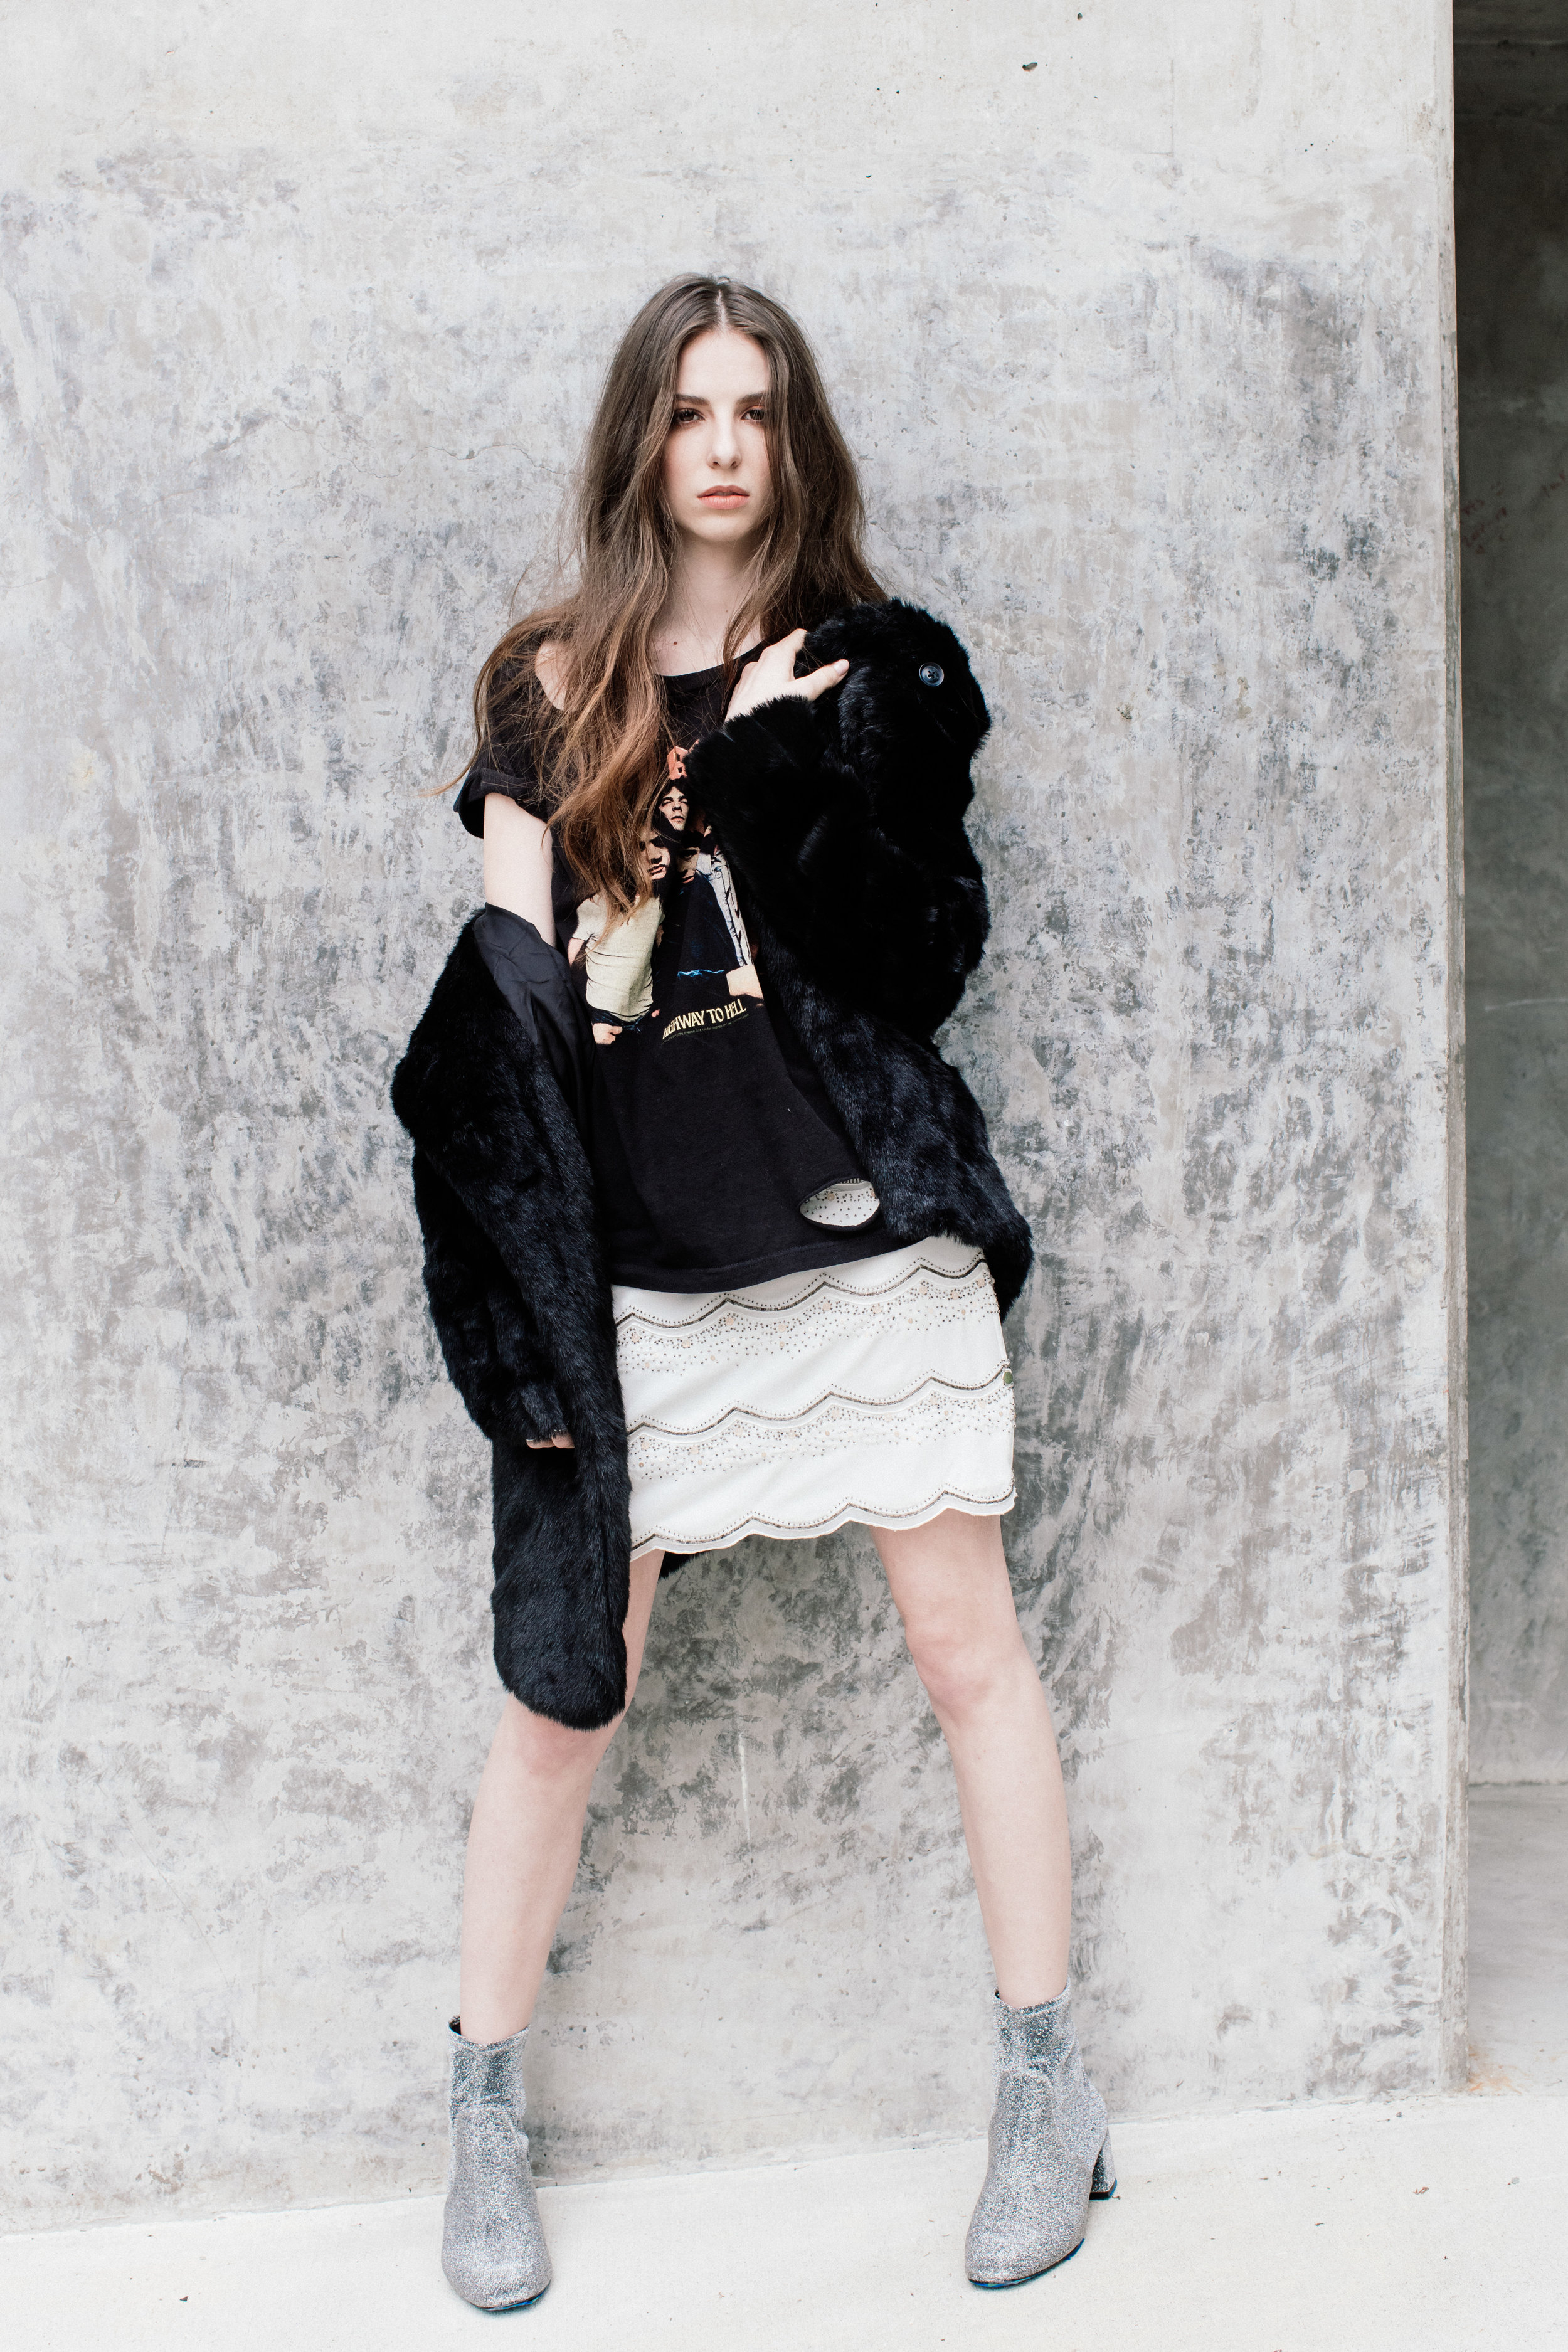 Fashion editorial photo of actress Genevieve Buechner.